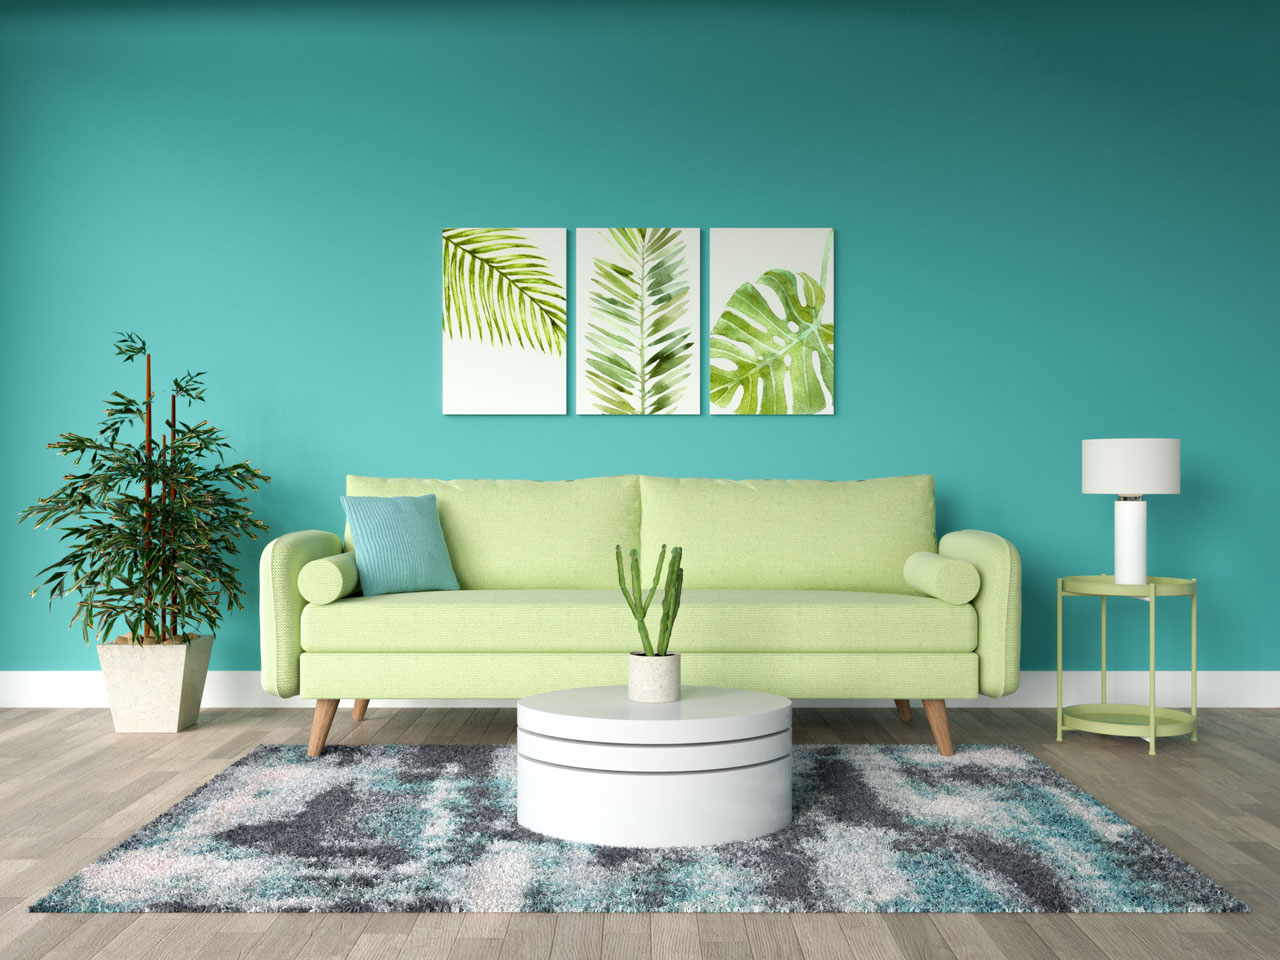 Lime and teal living room ideas